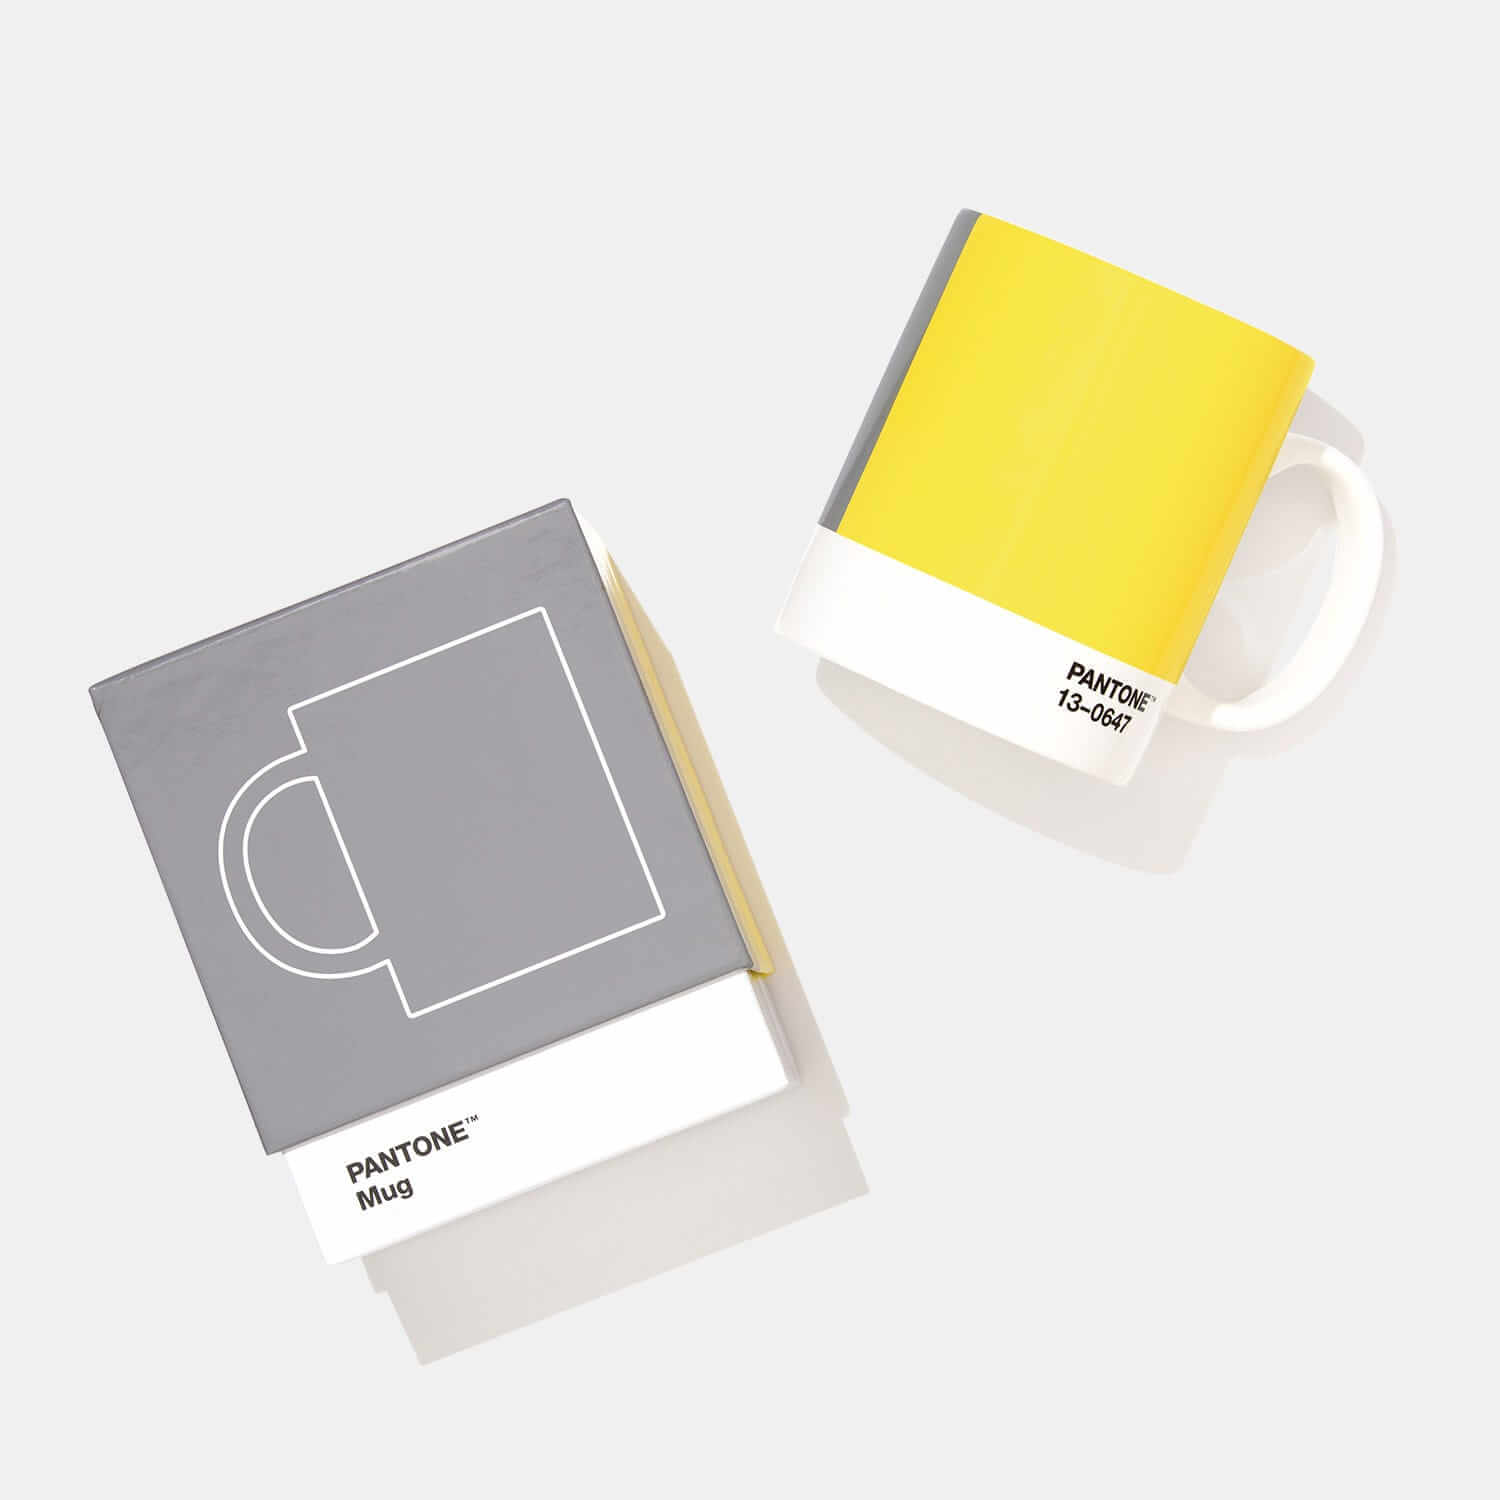 Driving Change with Design - Pantone Colors for Branding